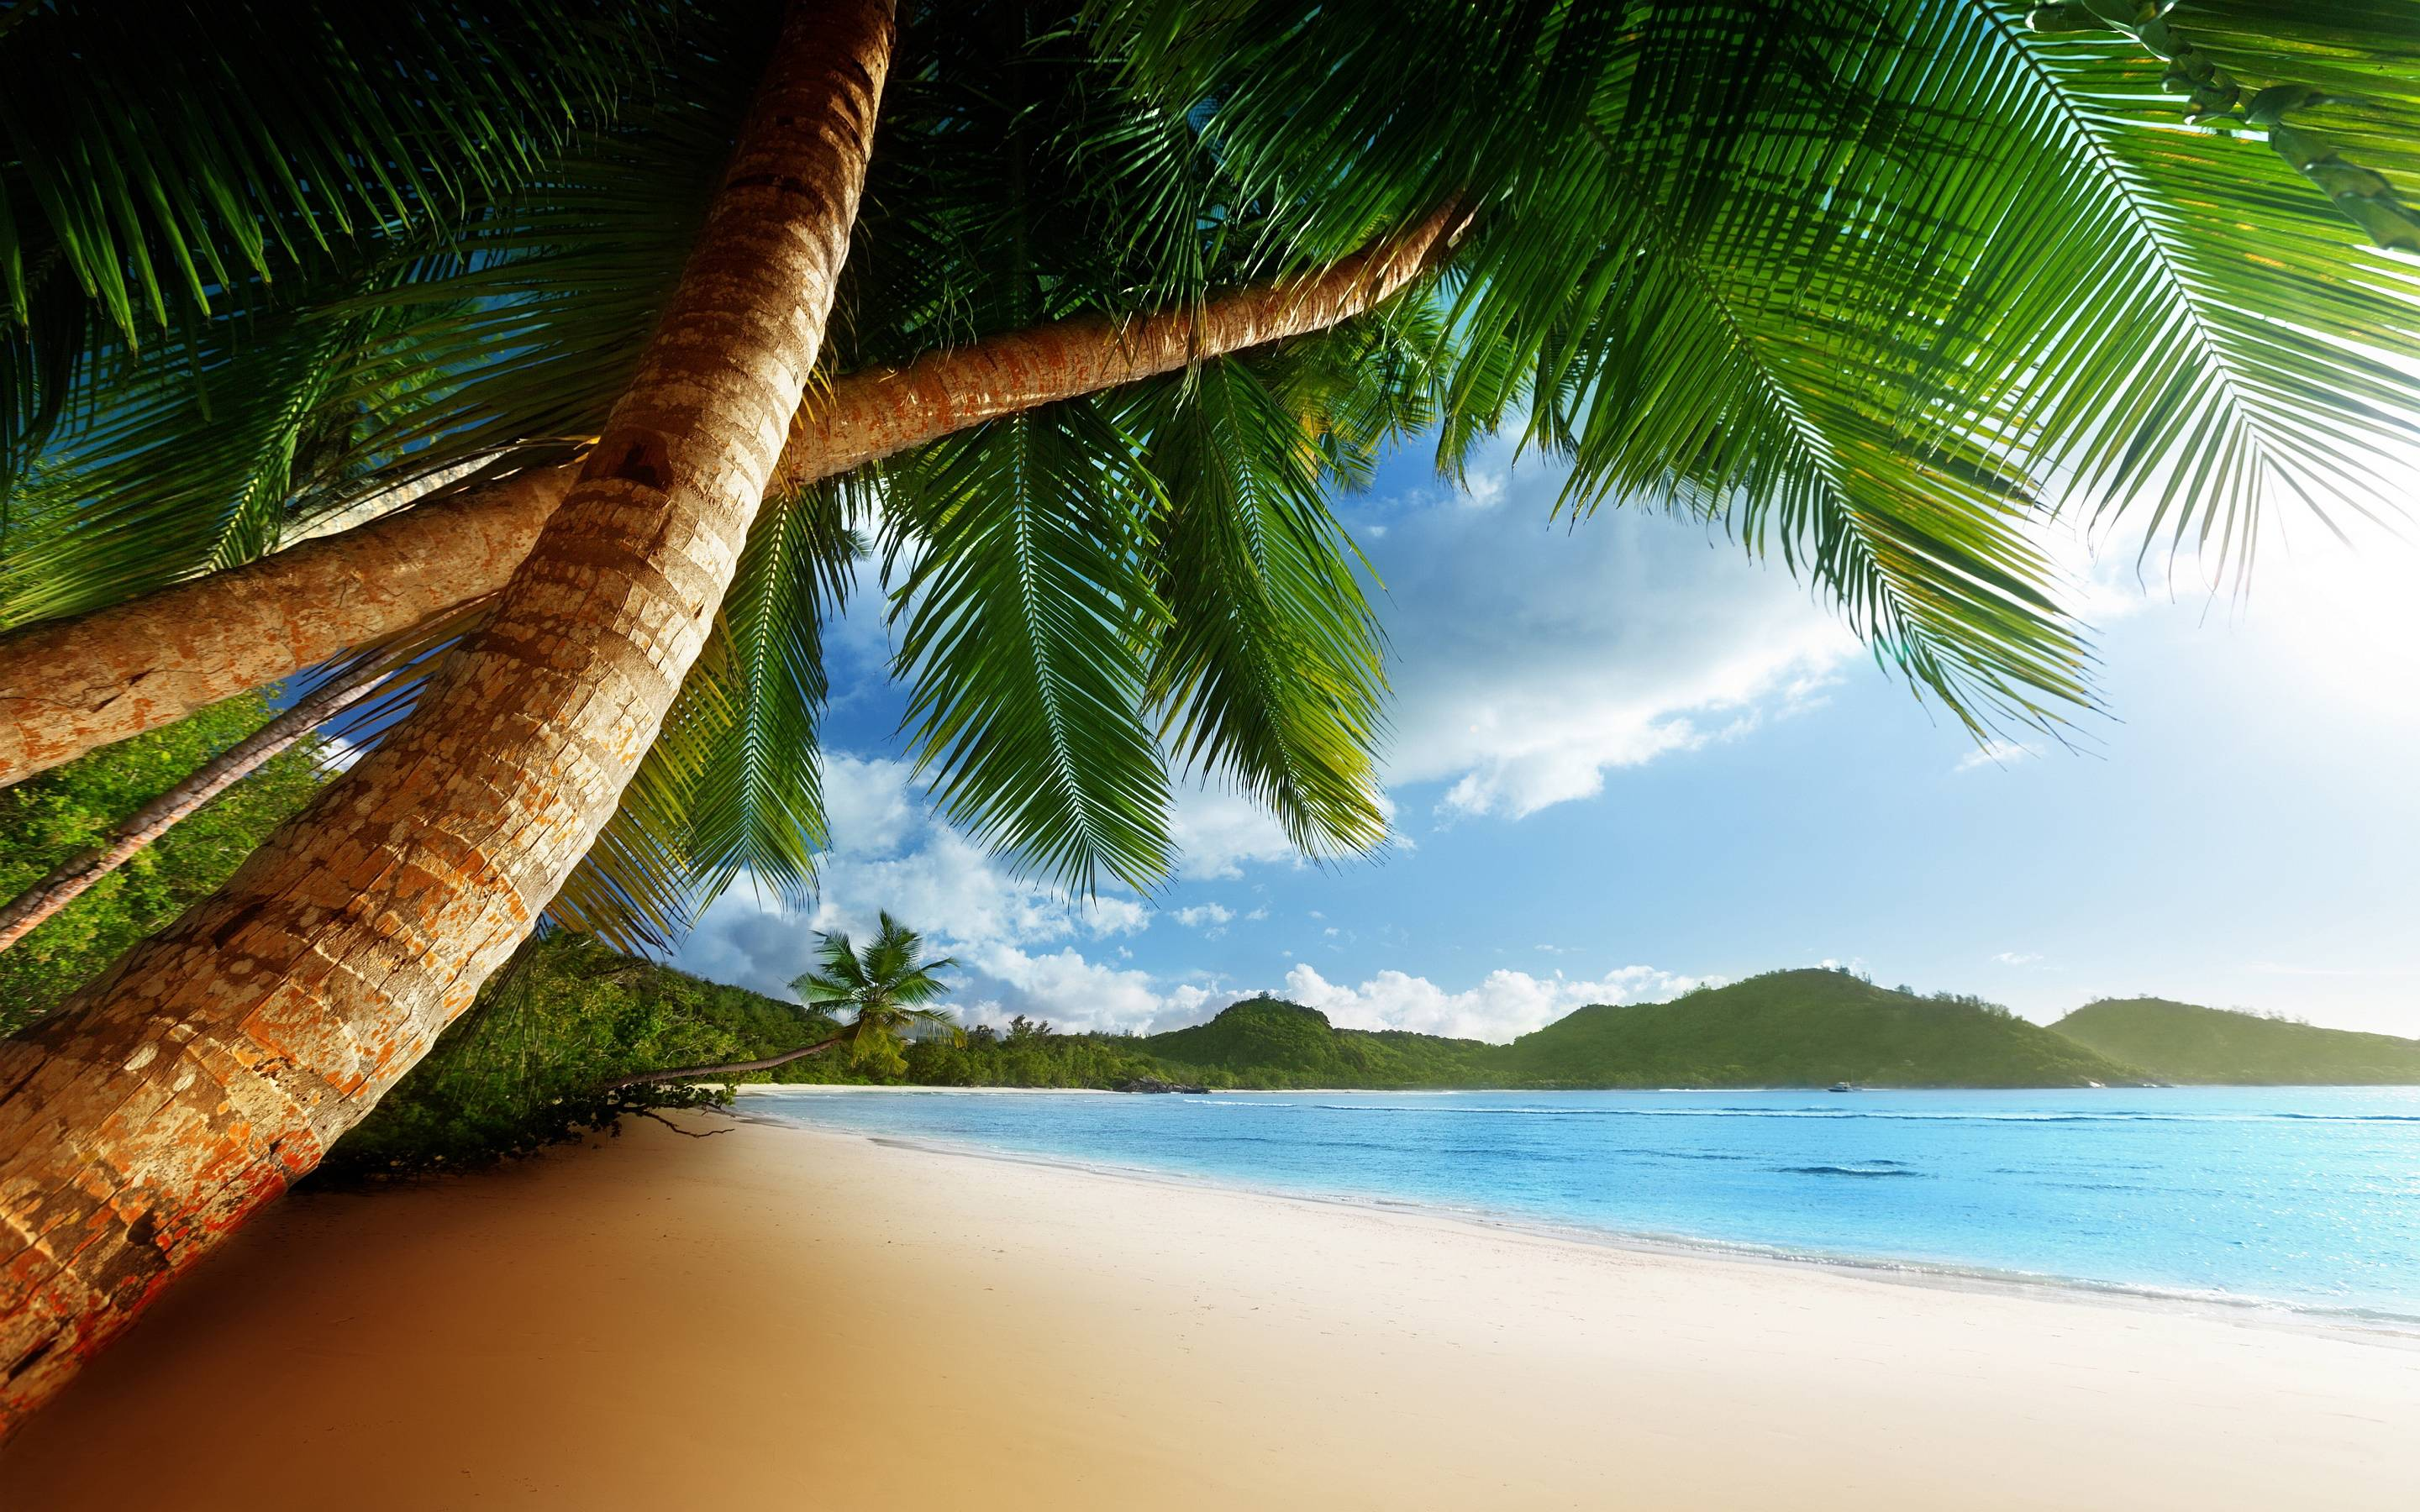 moving beach backgrounds for wallpaper - photo #32